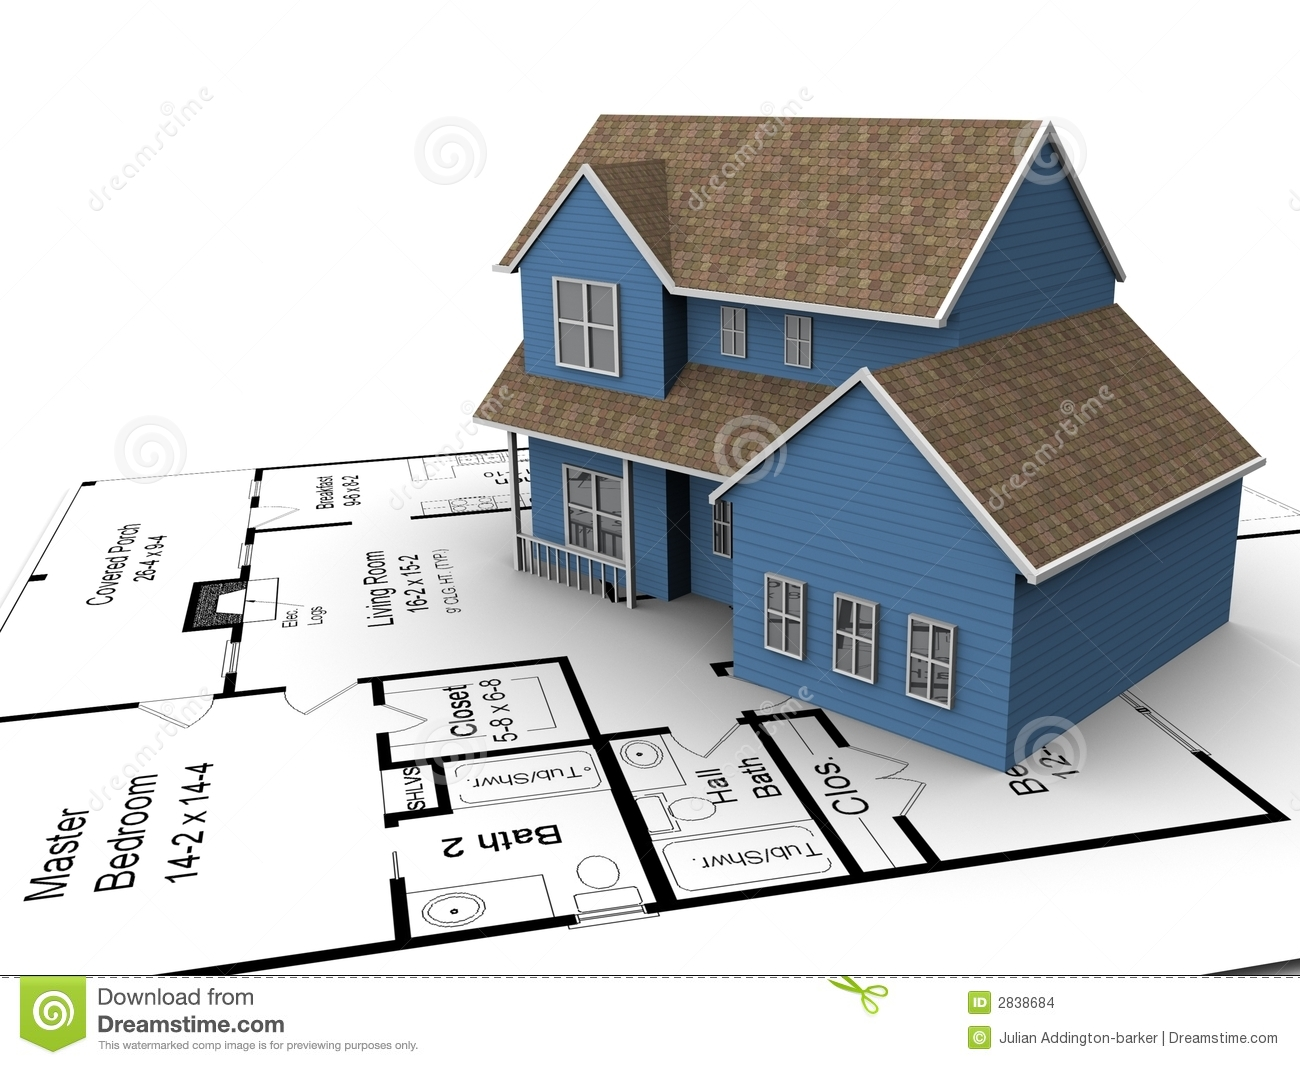 New house plans stock illustration image of design for Latest building designs and plans